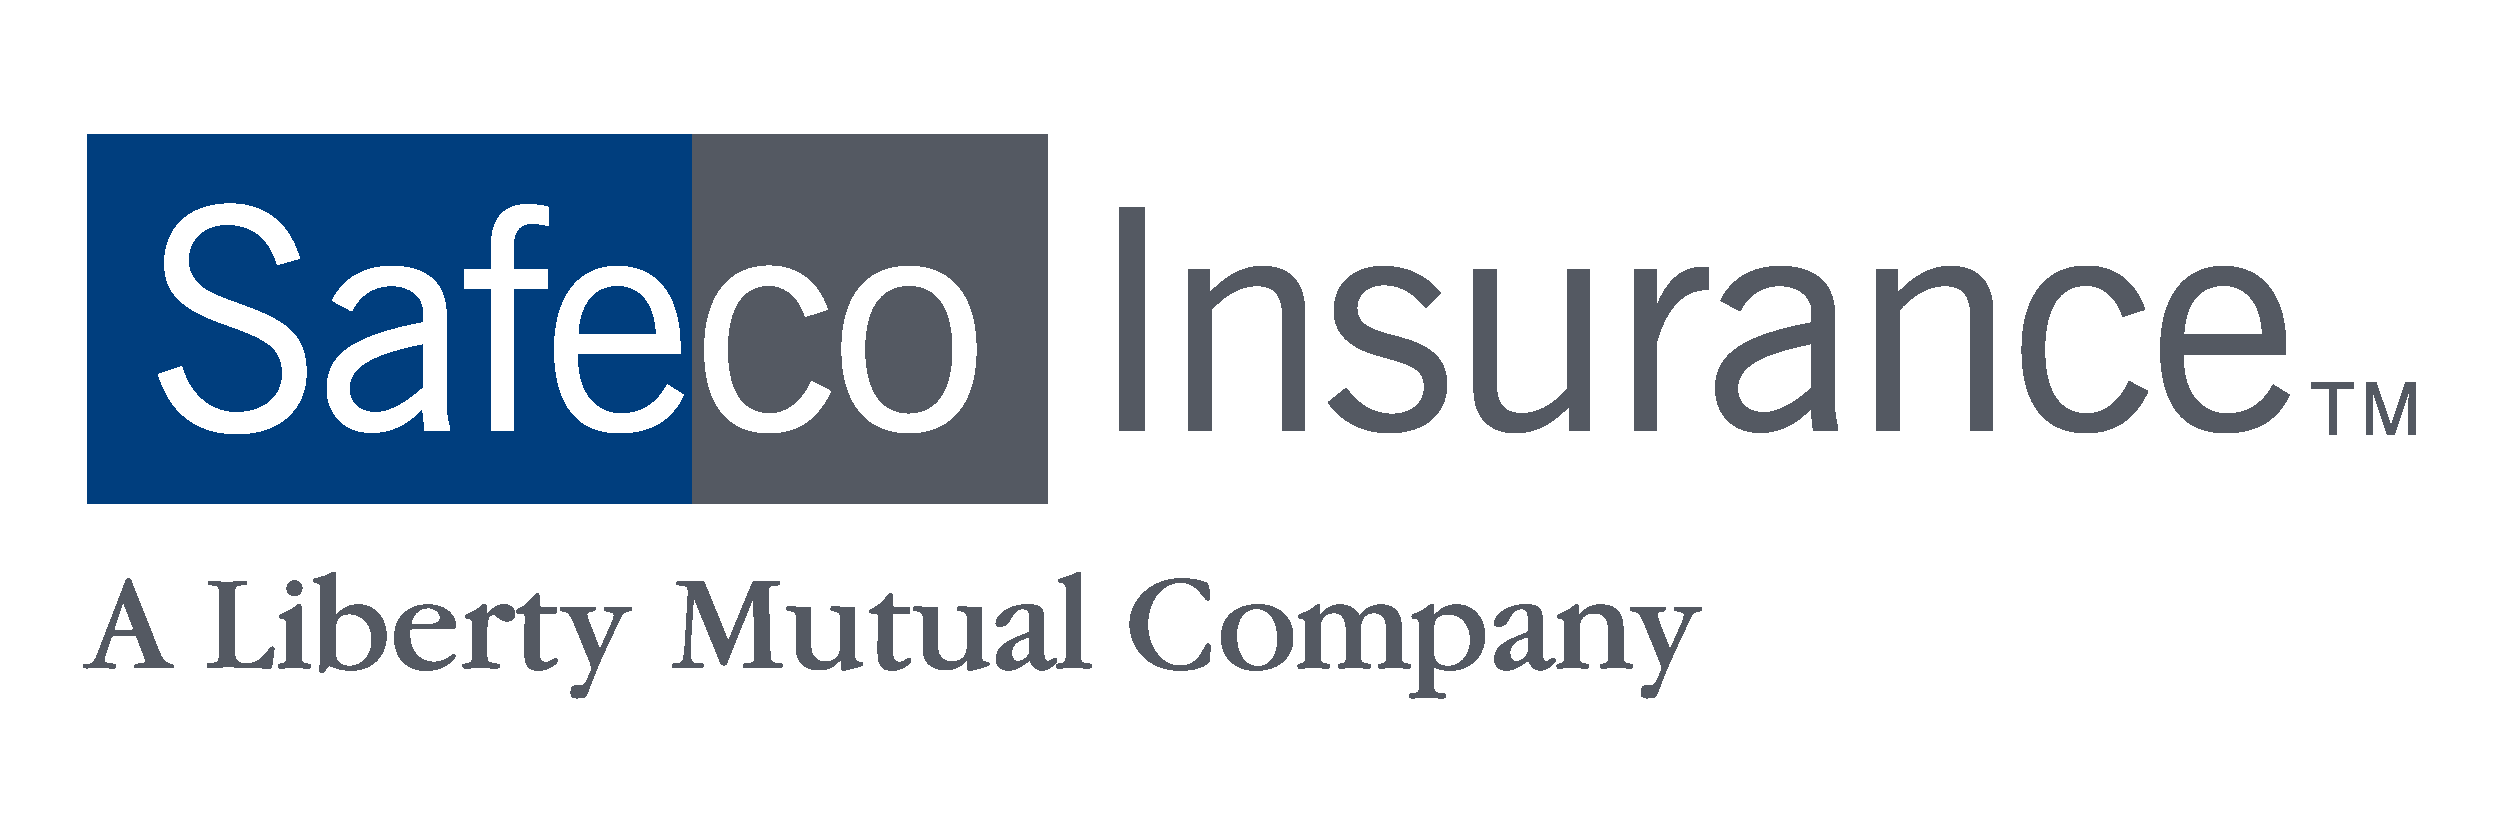 Safeco-Insurance-Logo